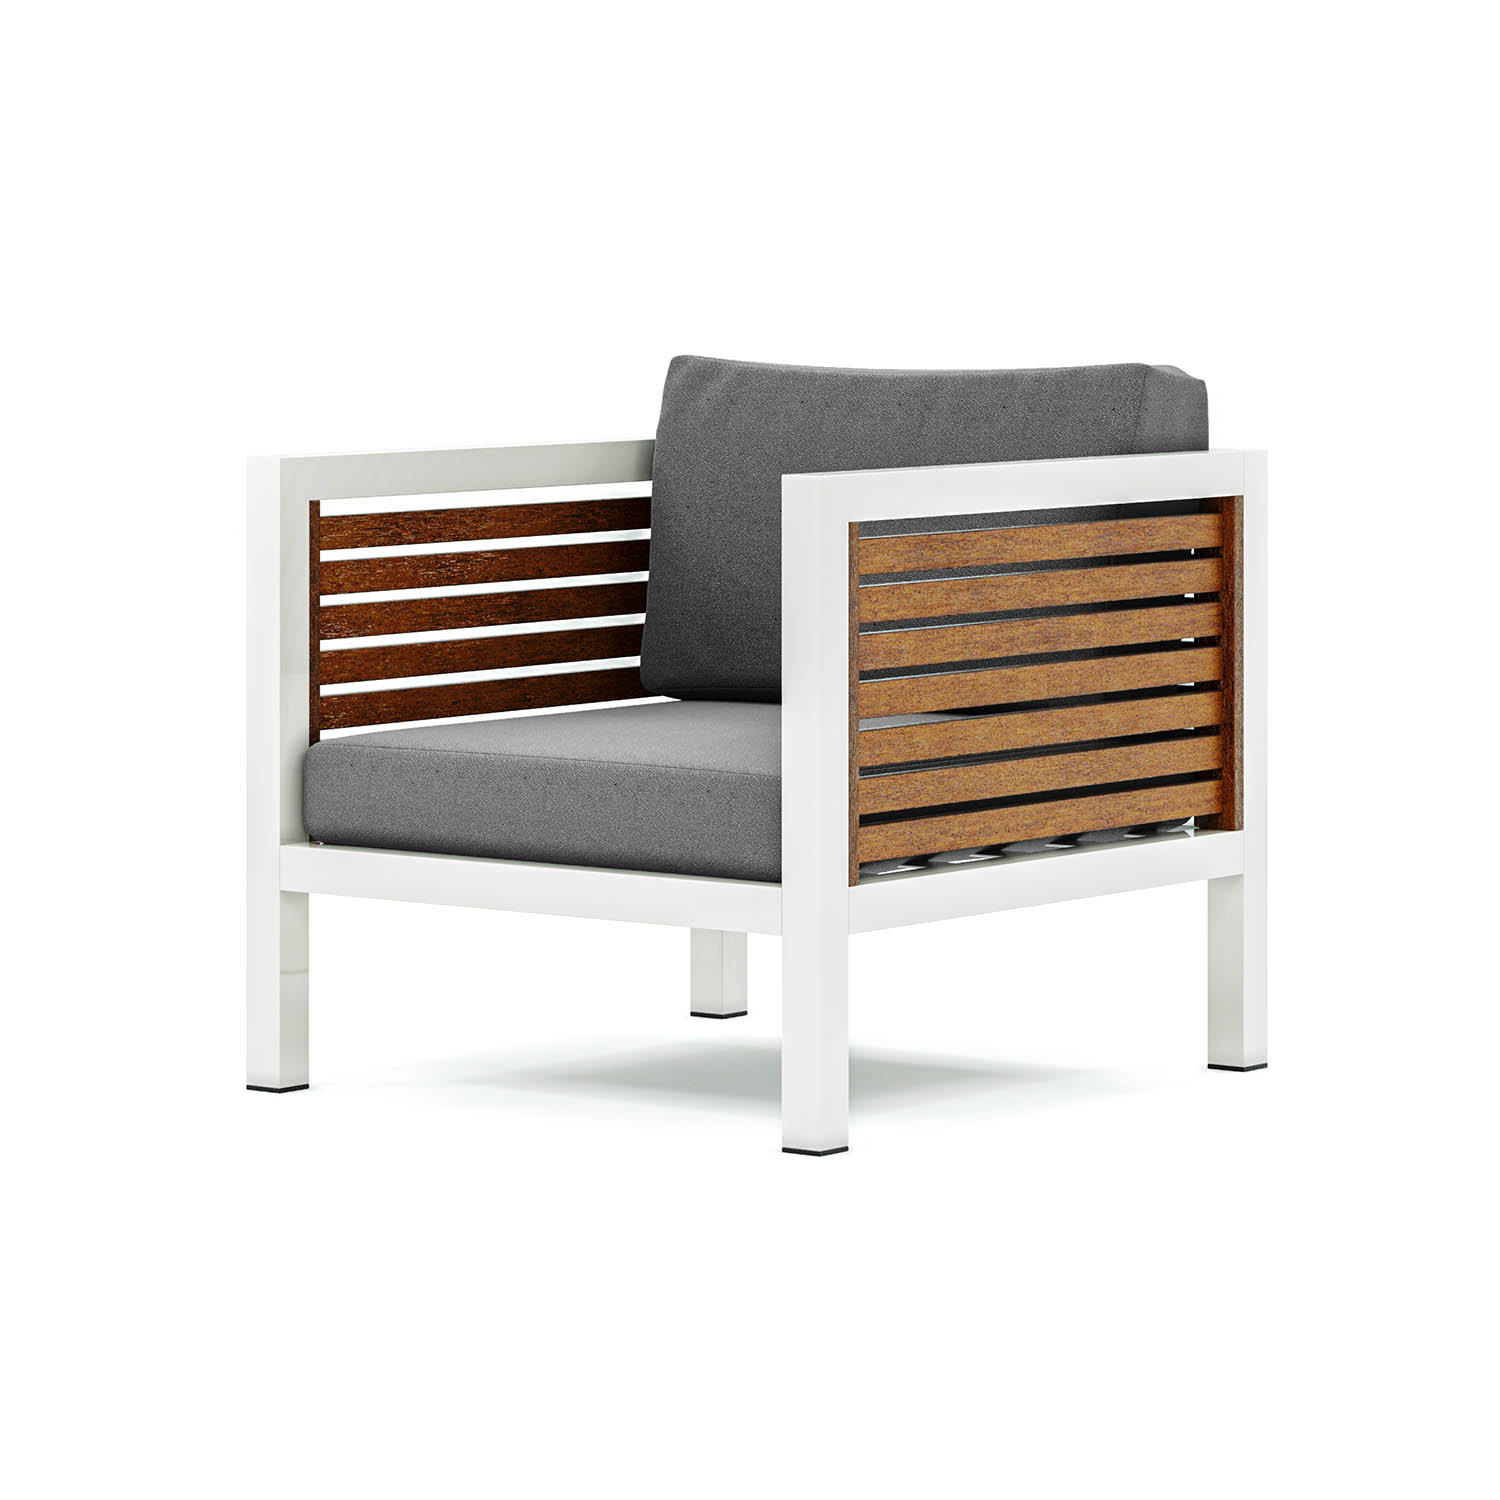 Origin high arm 38mm slatted timber one seater sofa